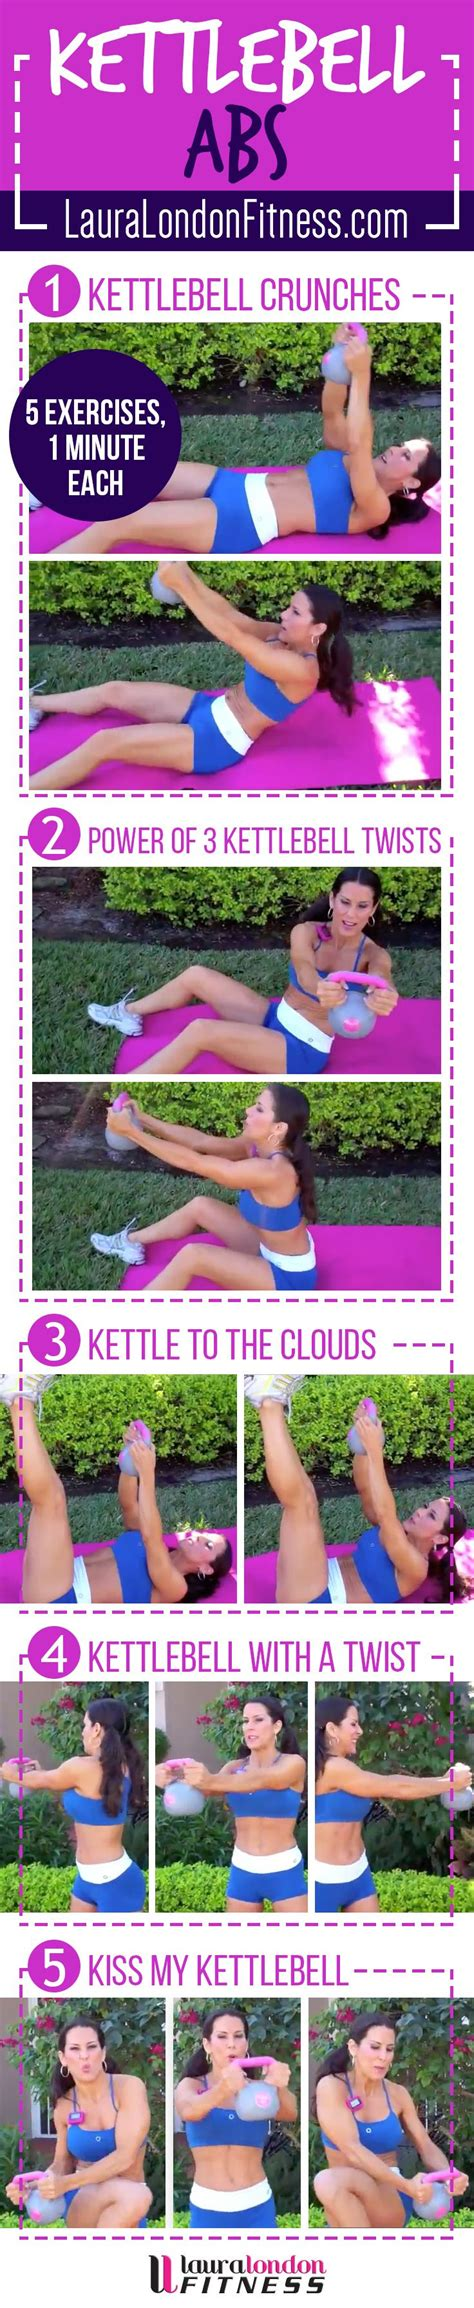 kettlebell exercises ab workout abs workouts kettle bell core fitness minute training toning exercise tone laura london fitfluential kettlebells done